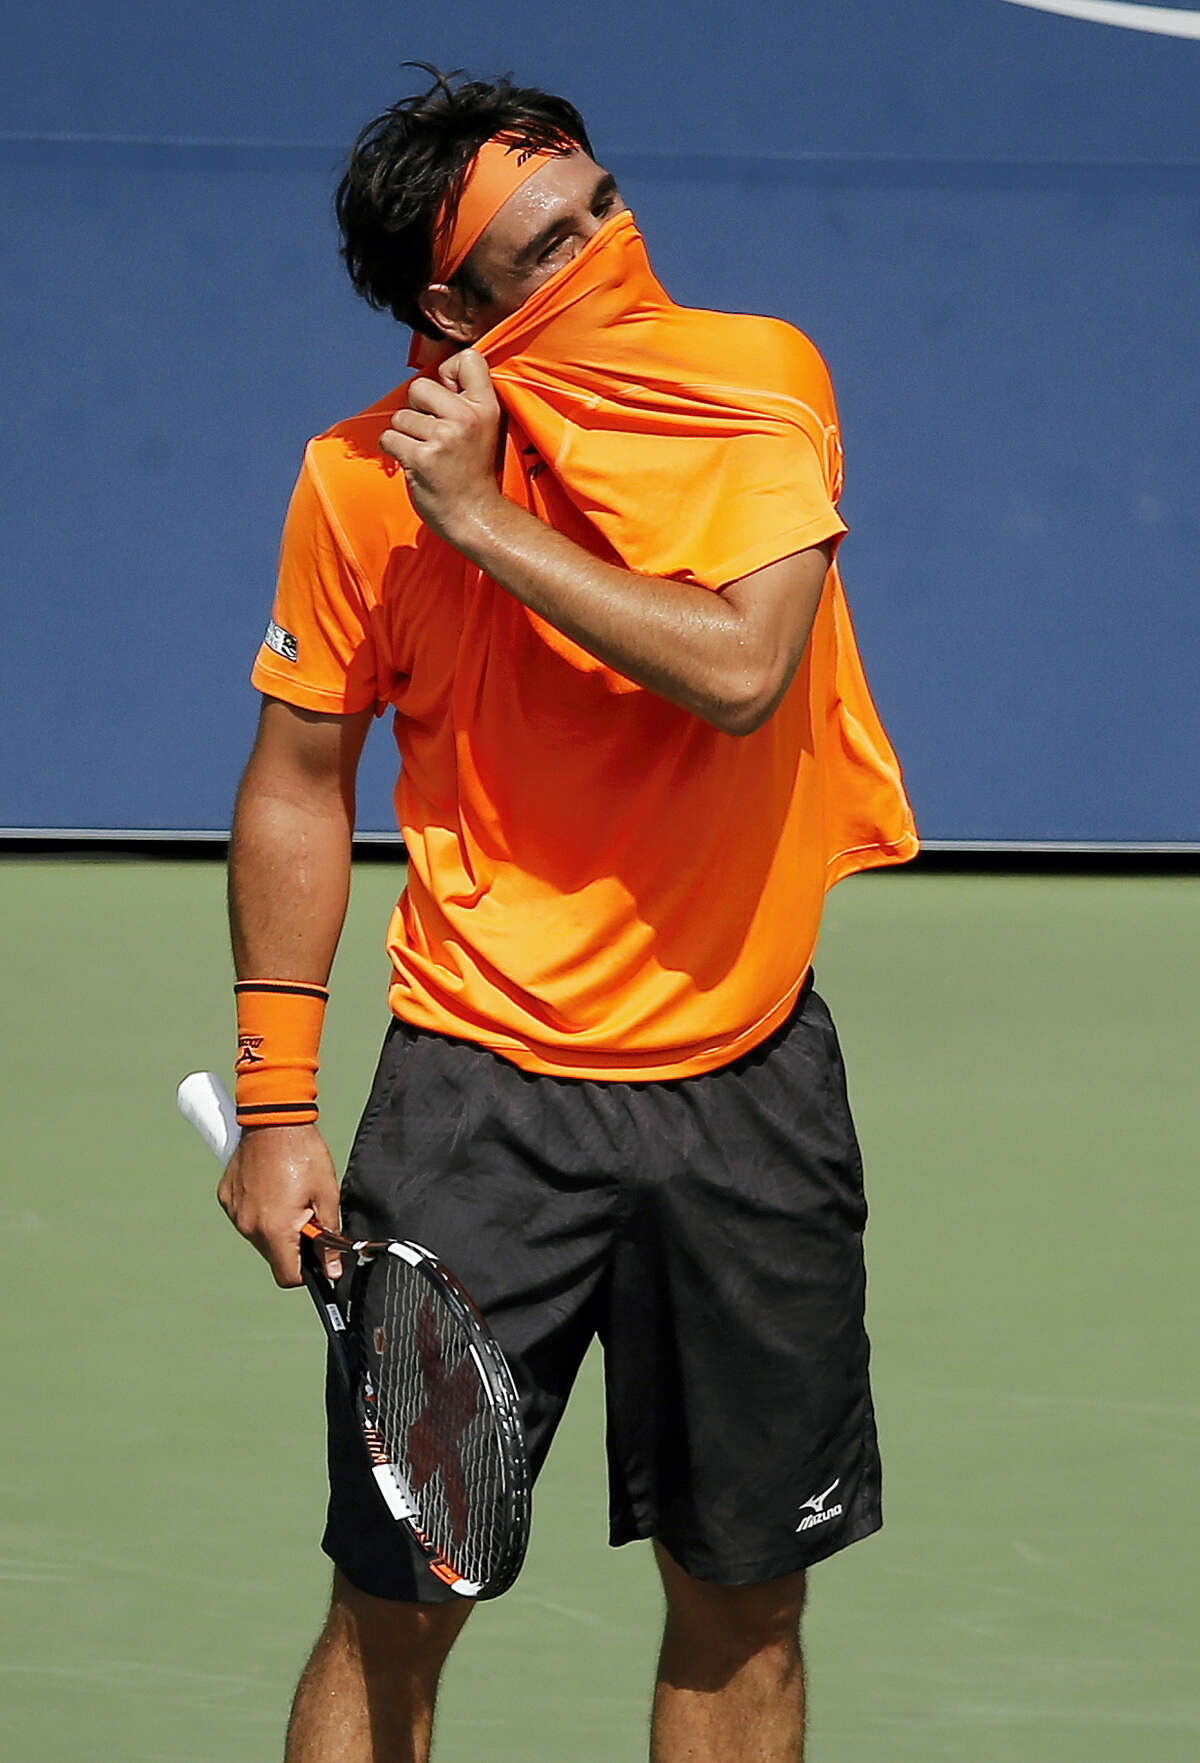 Marcos Baghdatis reacts after a point against Gael Monfils on Sunday.